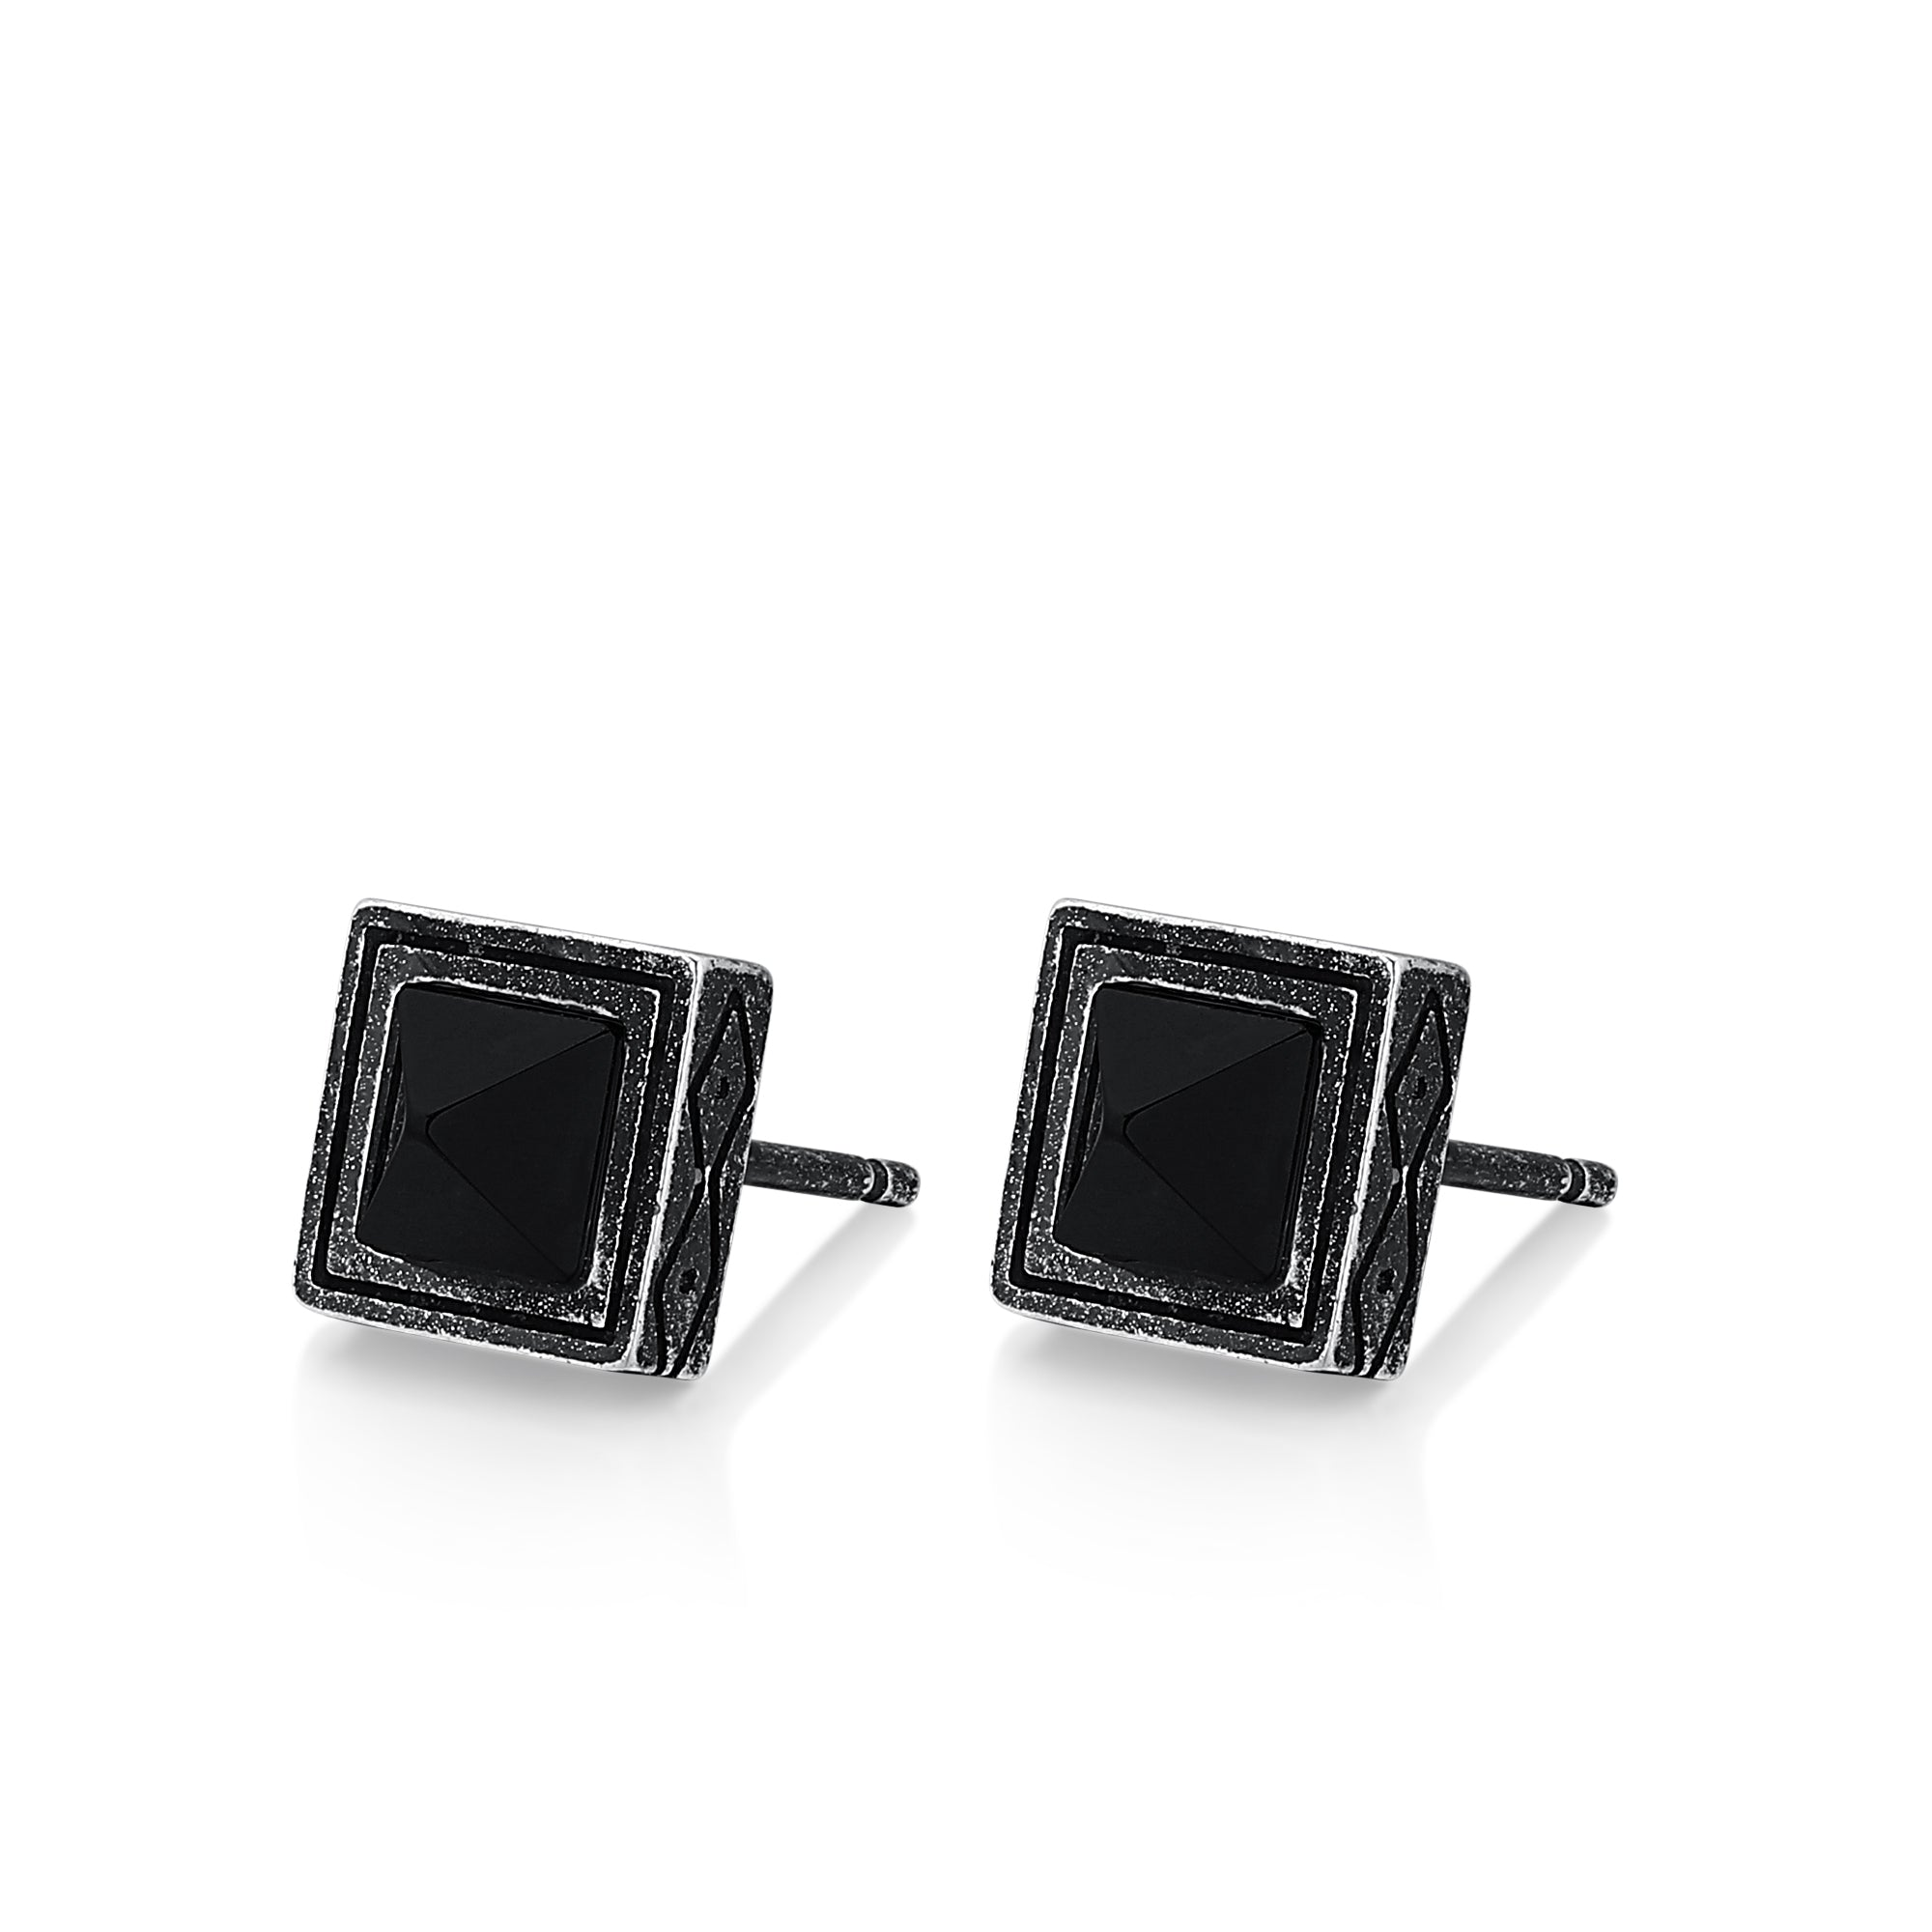 Silver Square Agate Stud Earrings